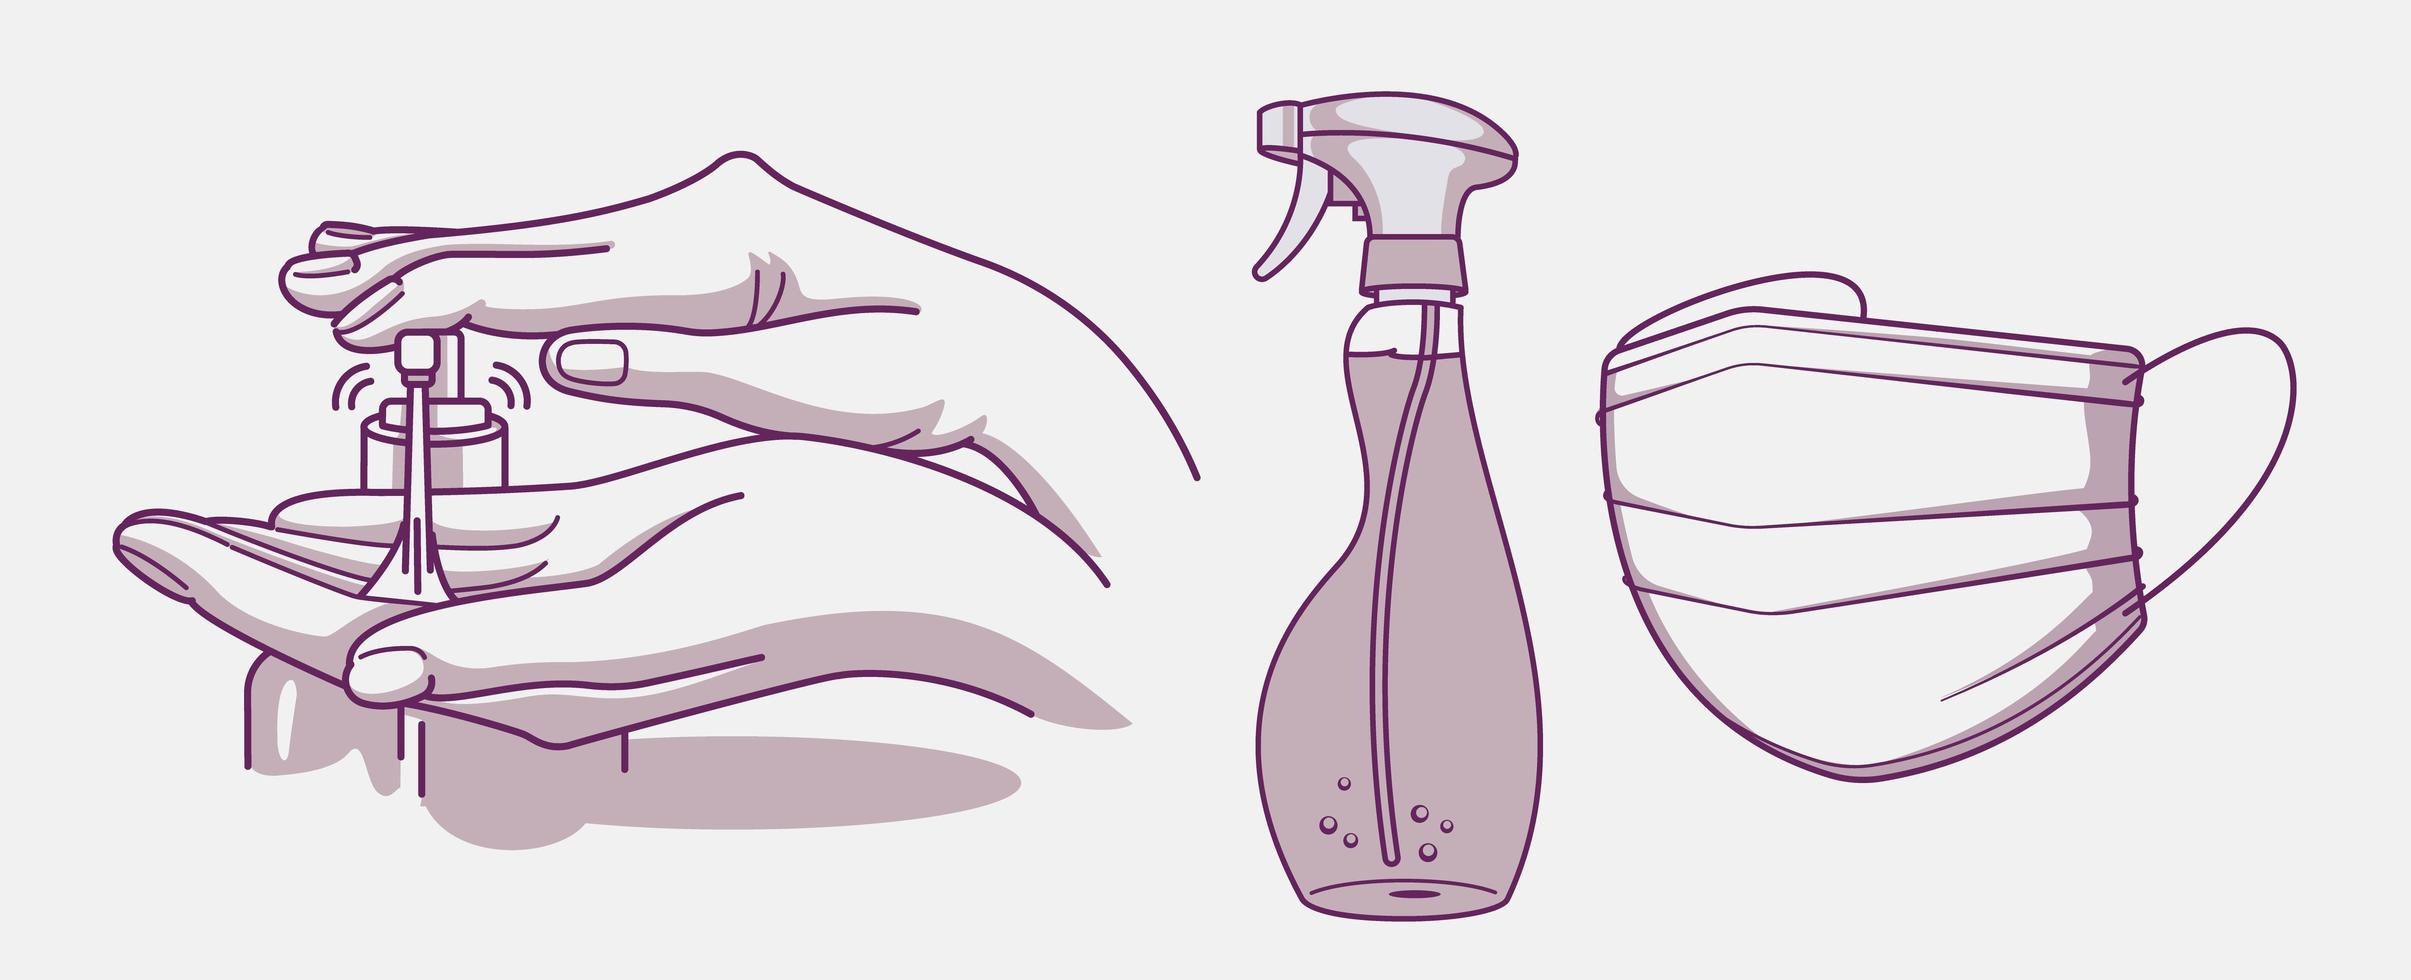 Set of hygiene and infection prevention designs vector